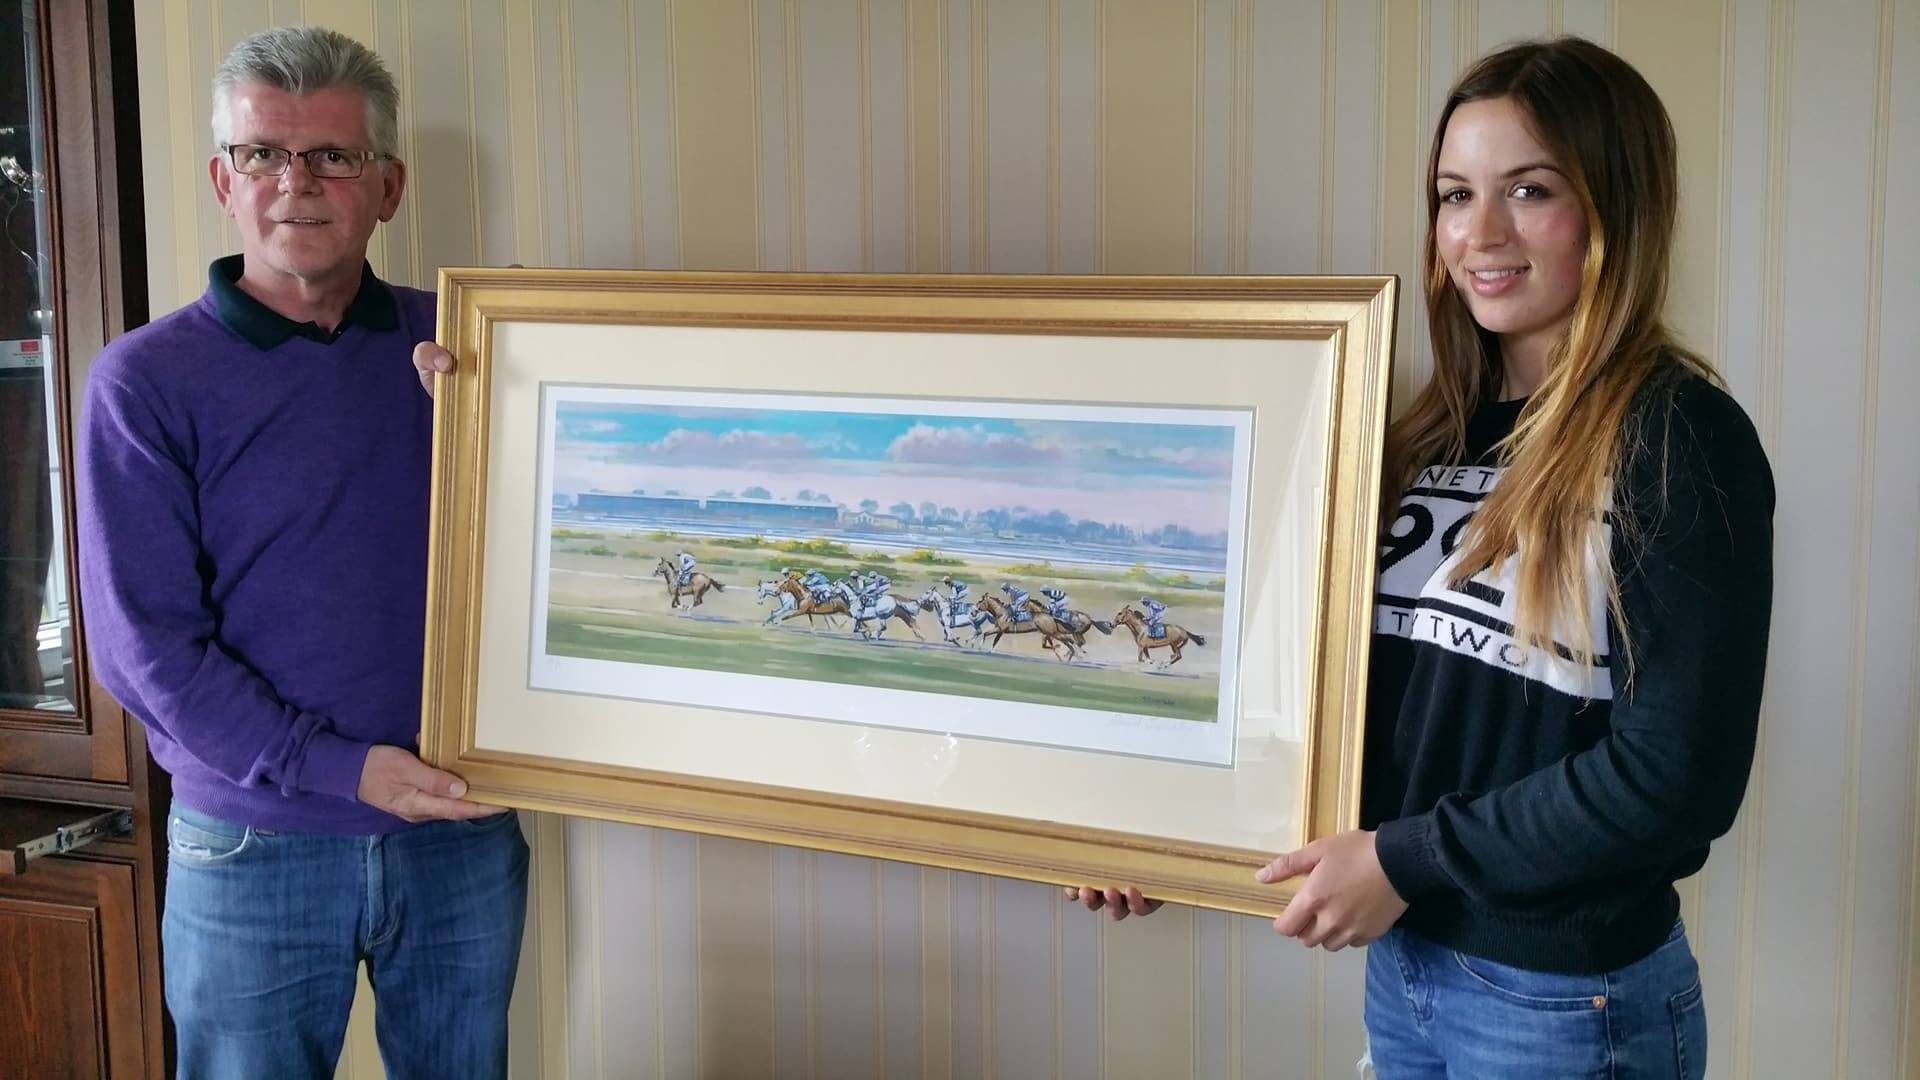 Corinthian Challenge rider Alan Redmond of Redmond Fine Art offering limited edition print for fundraising